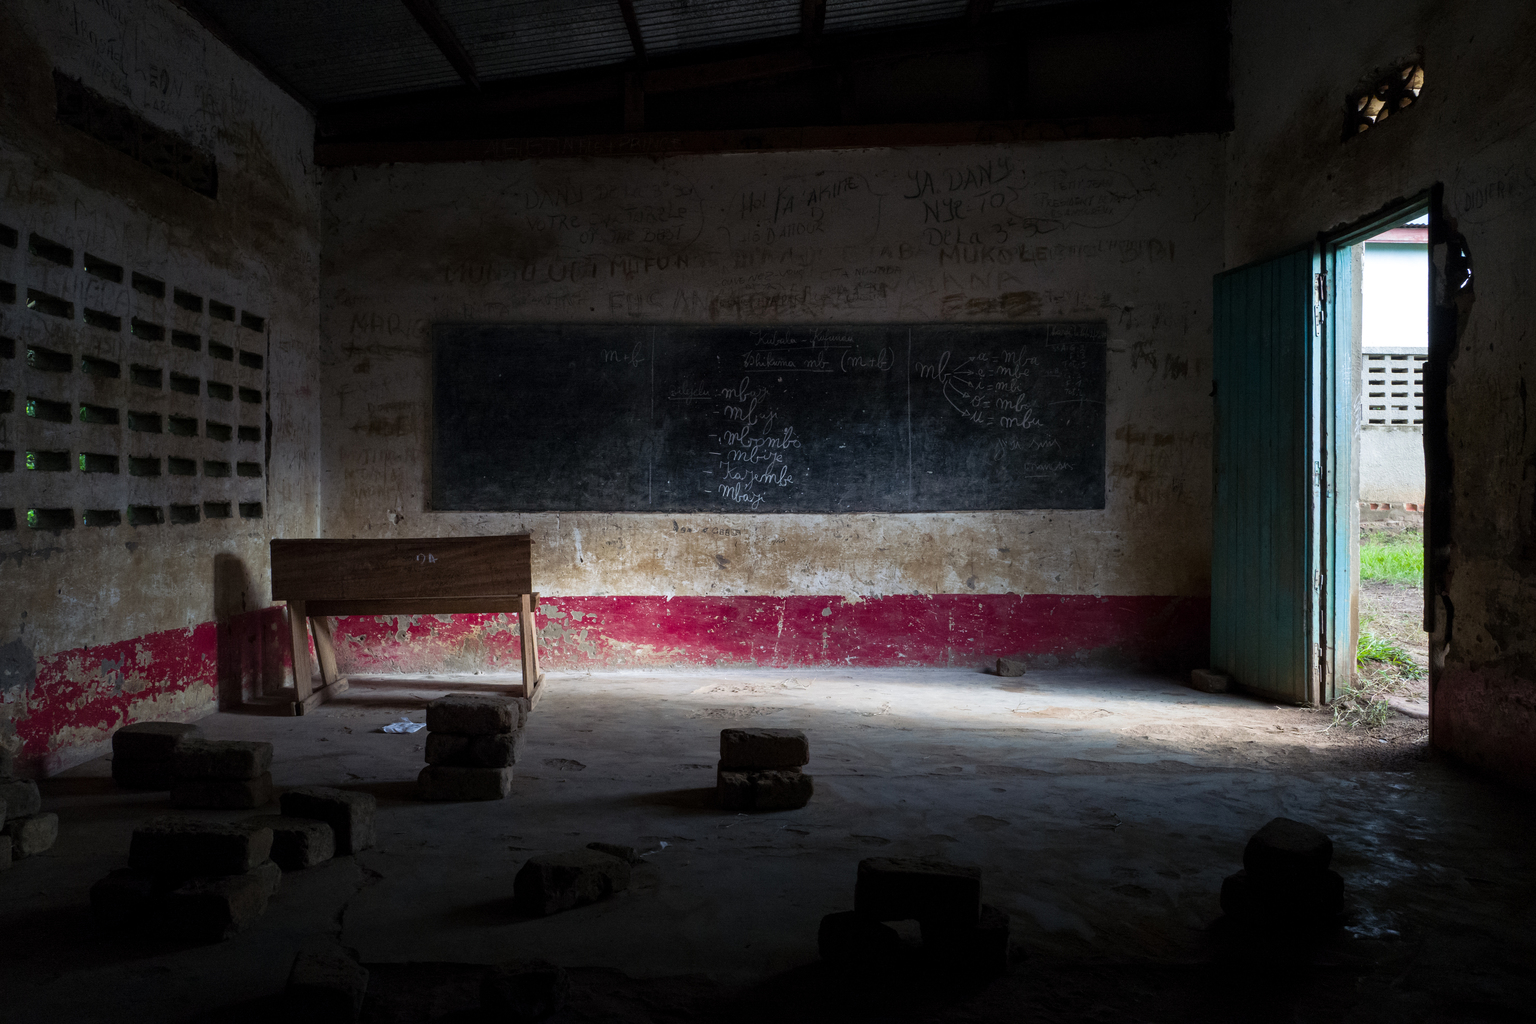 A shaft of light reflects an empty classroom with an empty chalkboard.